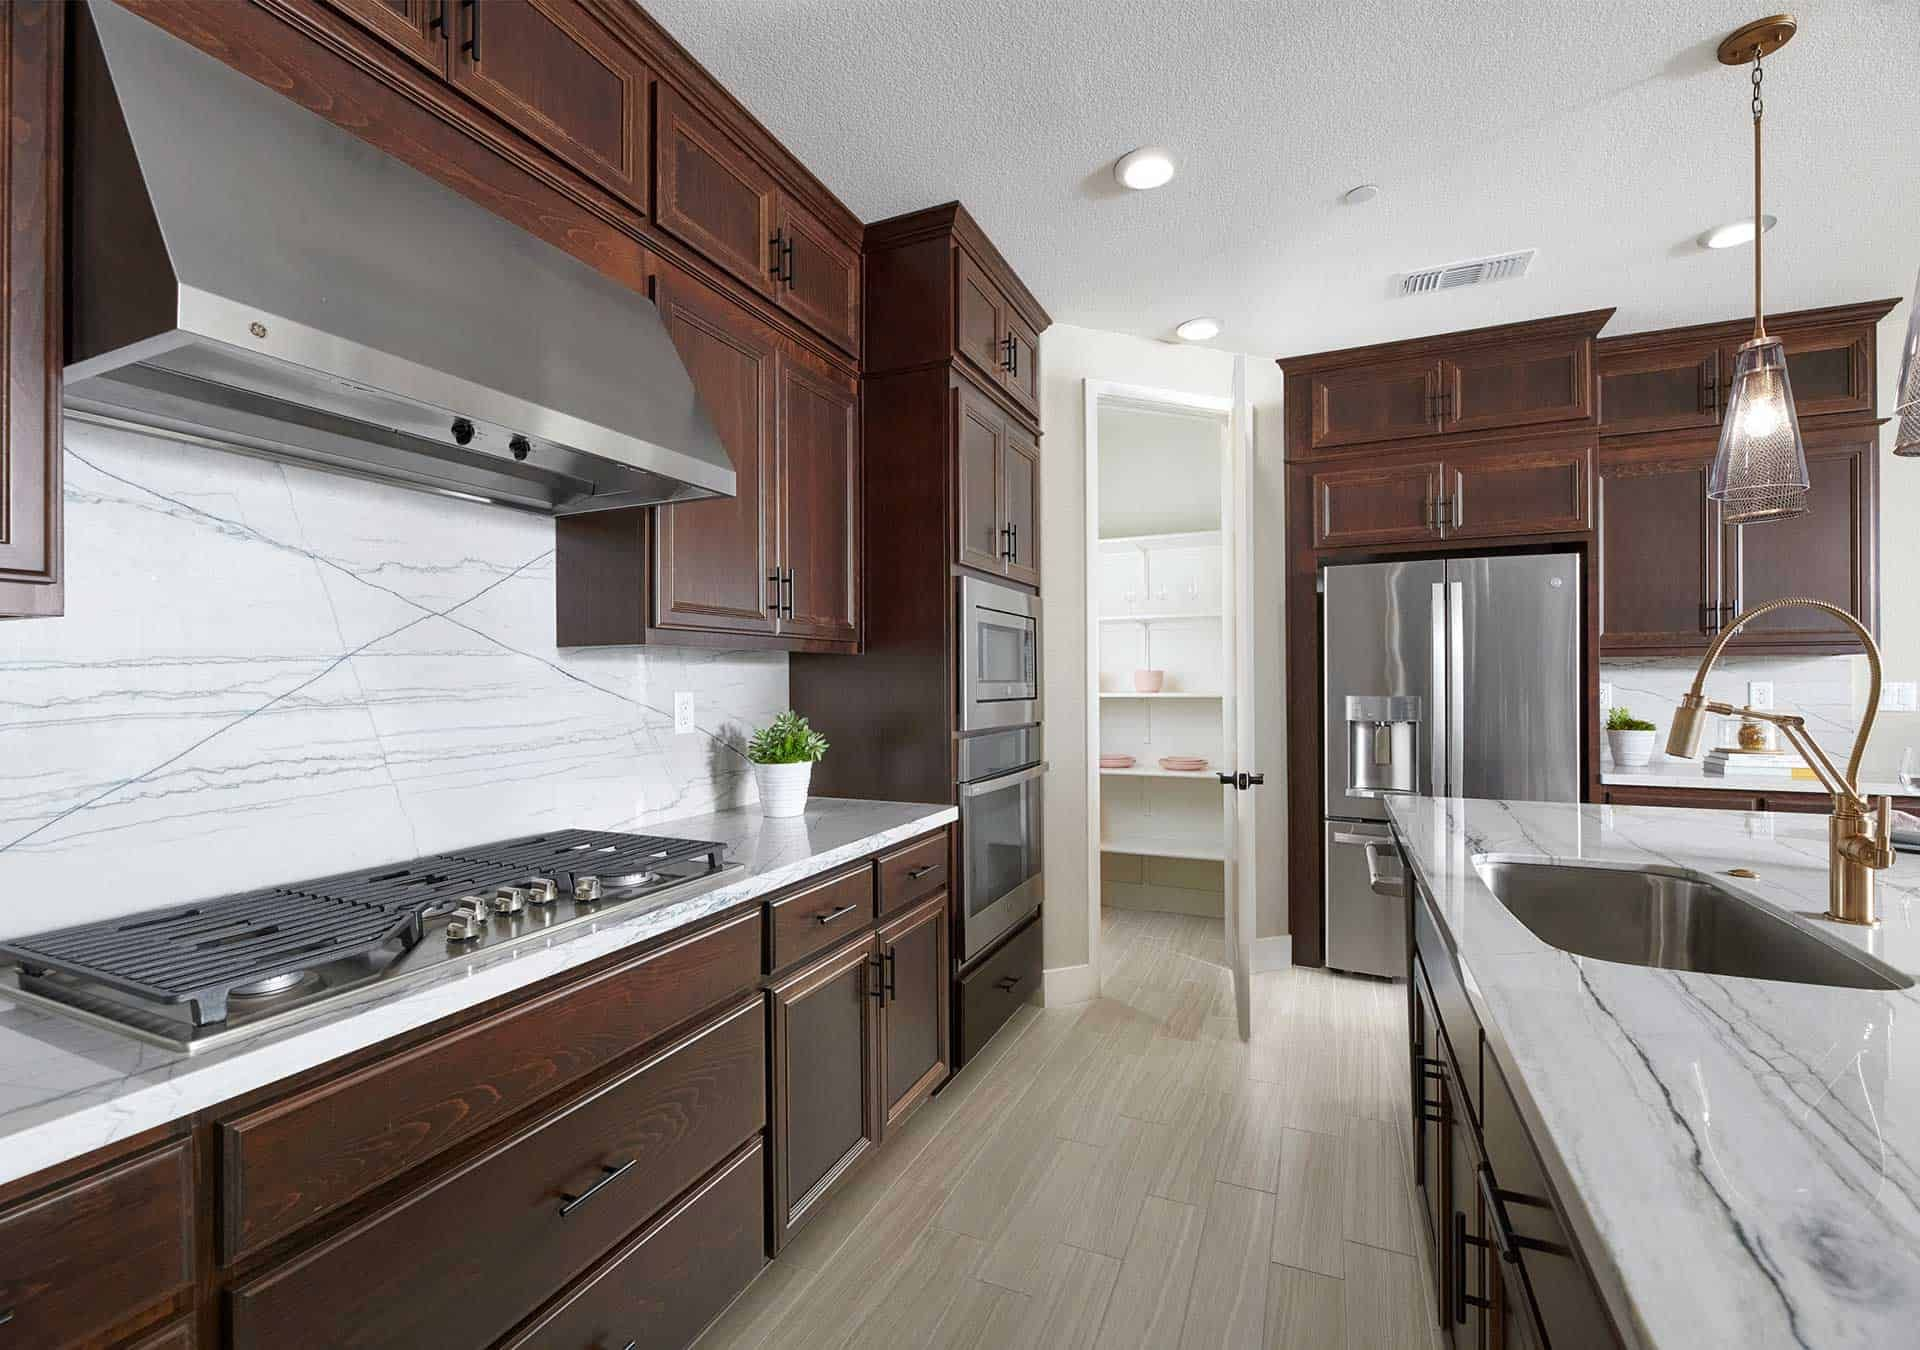 Kitchen featured in the Plan 1 By Tri Pointe Homes in Vallejo-Napa, CA